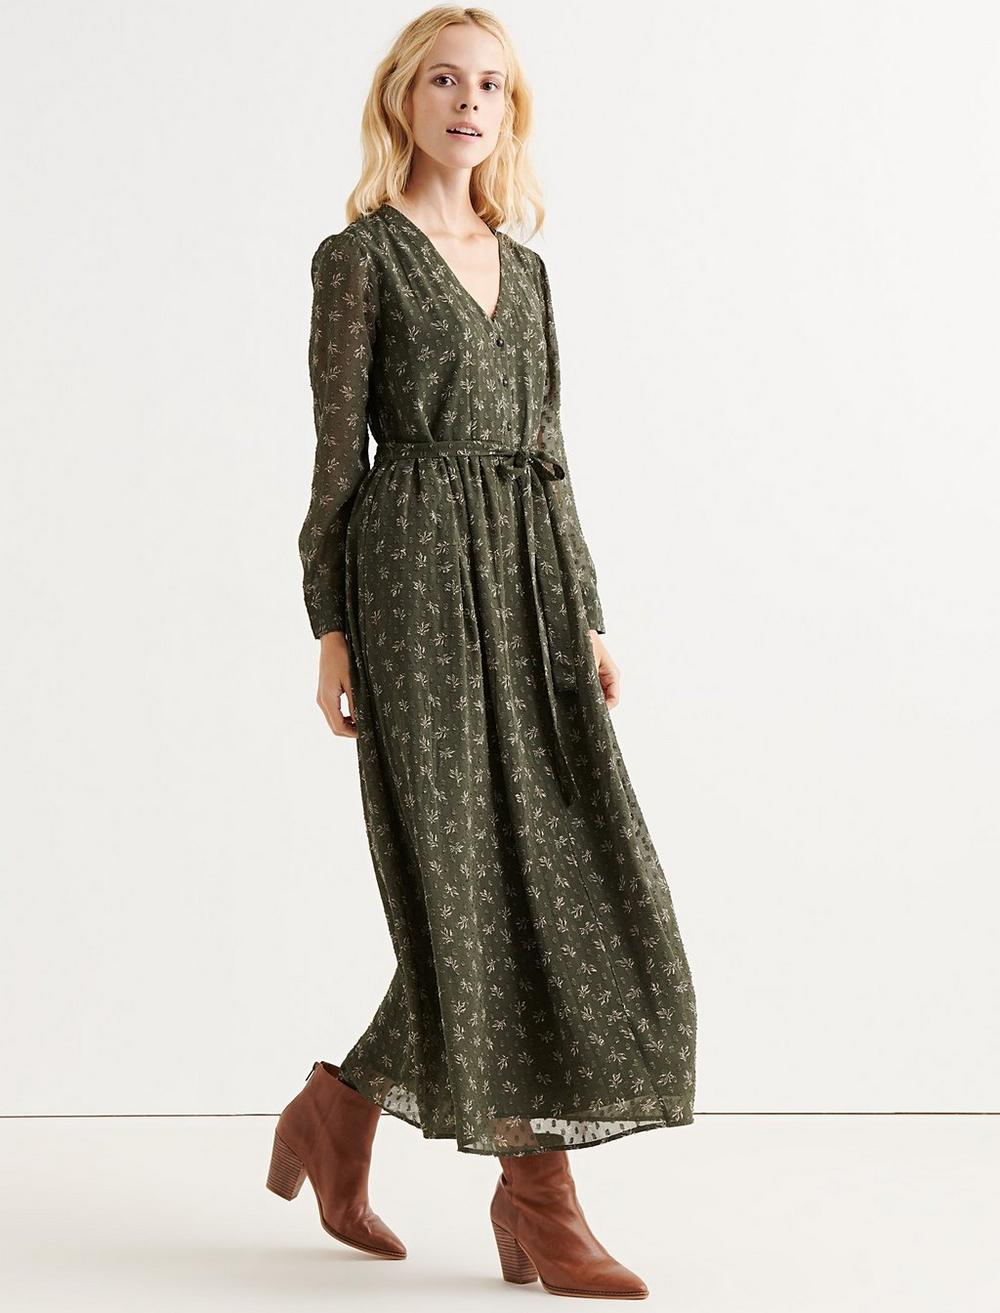 BUTTON FRONT MAXI, image 2